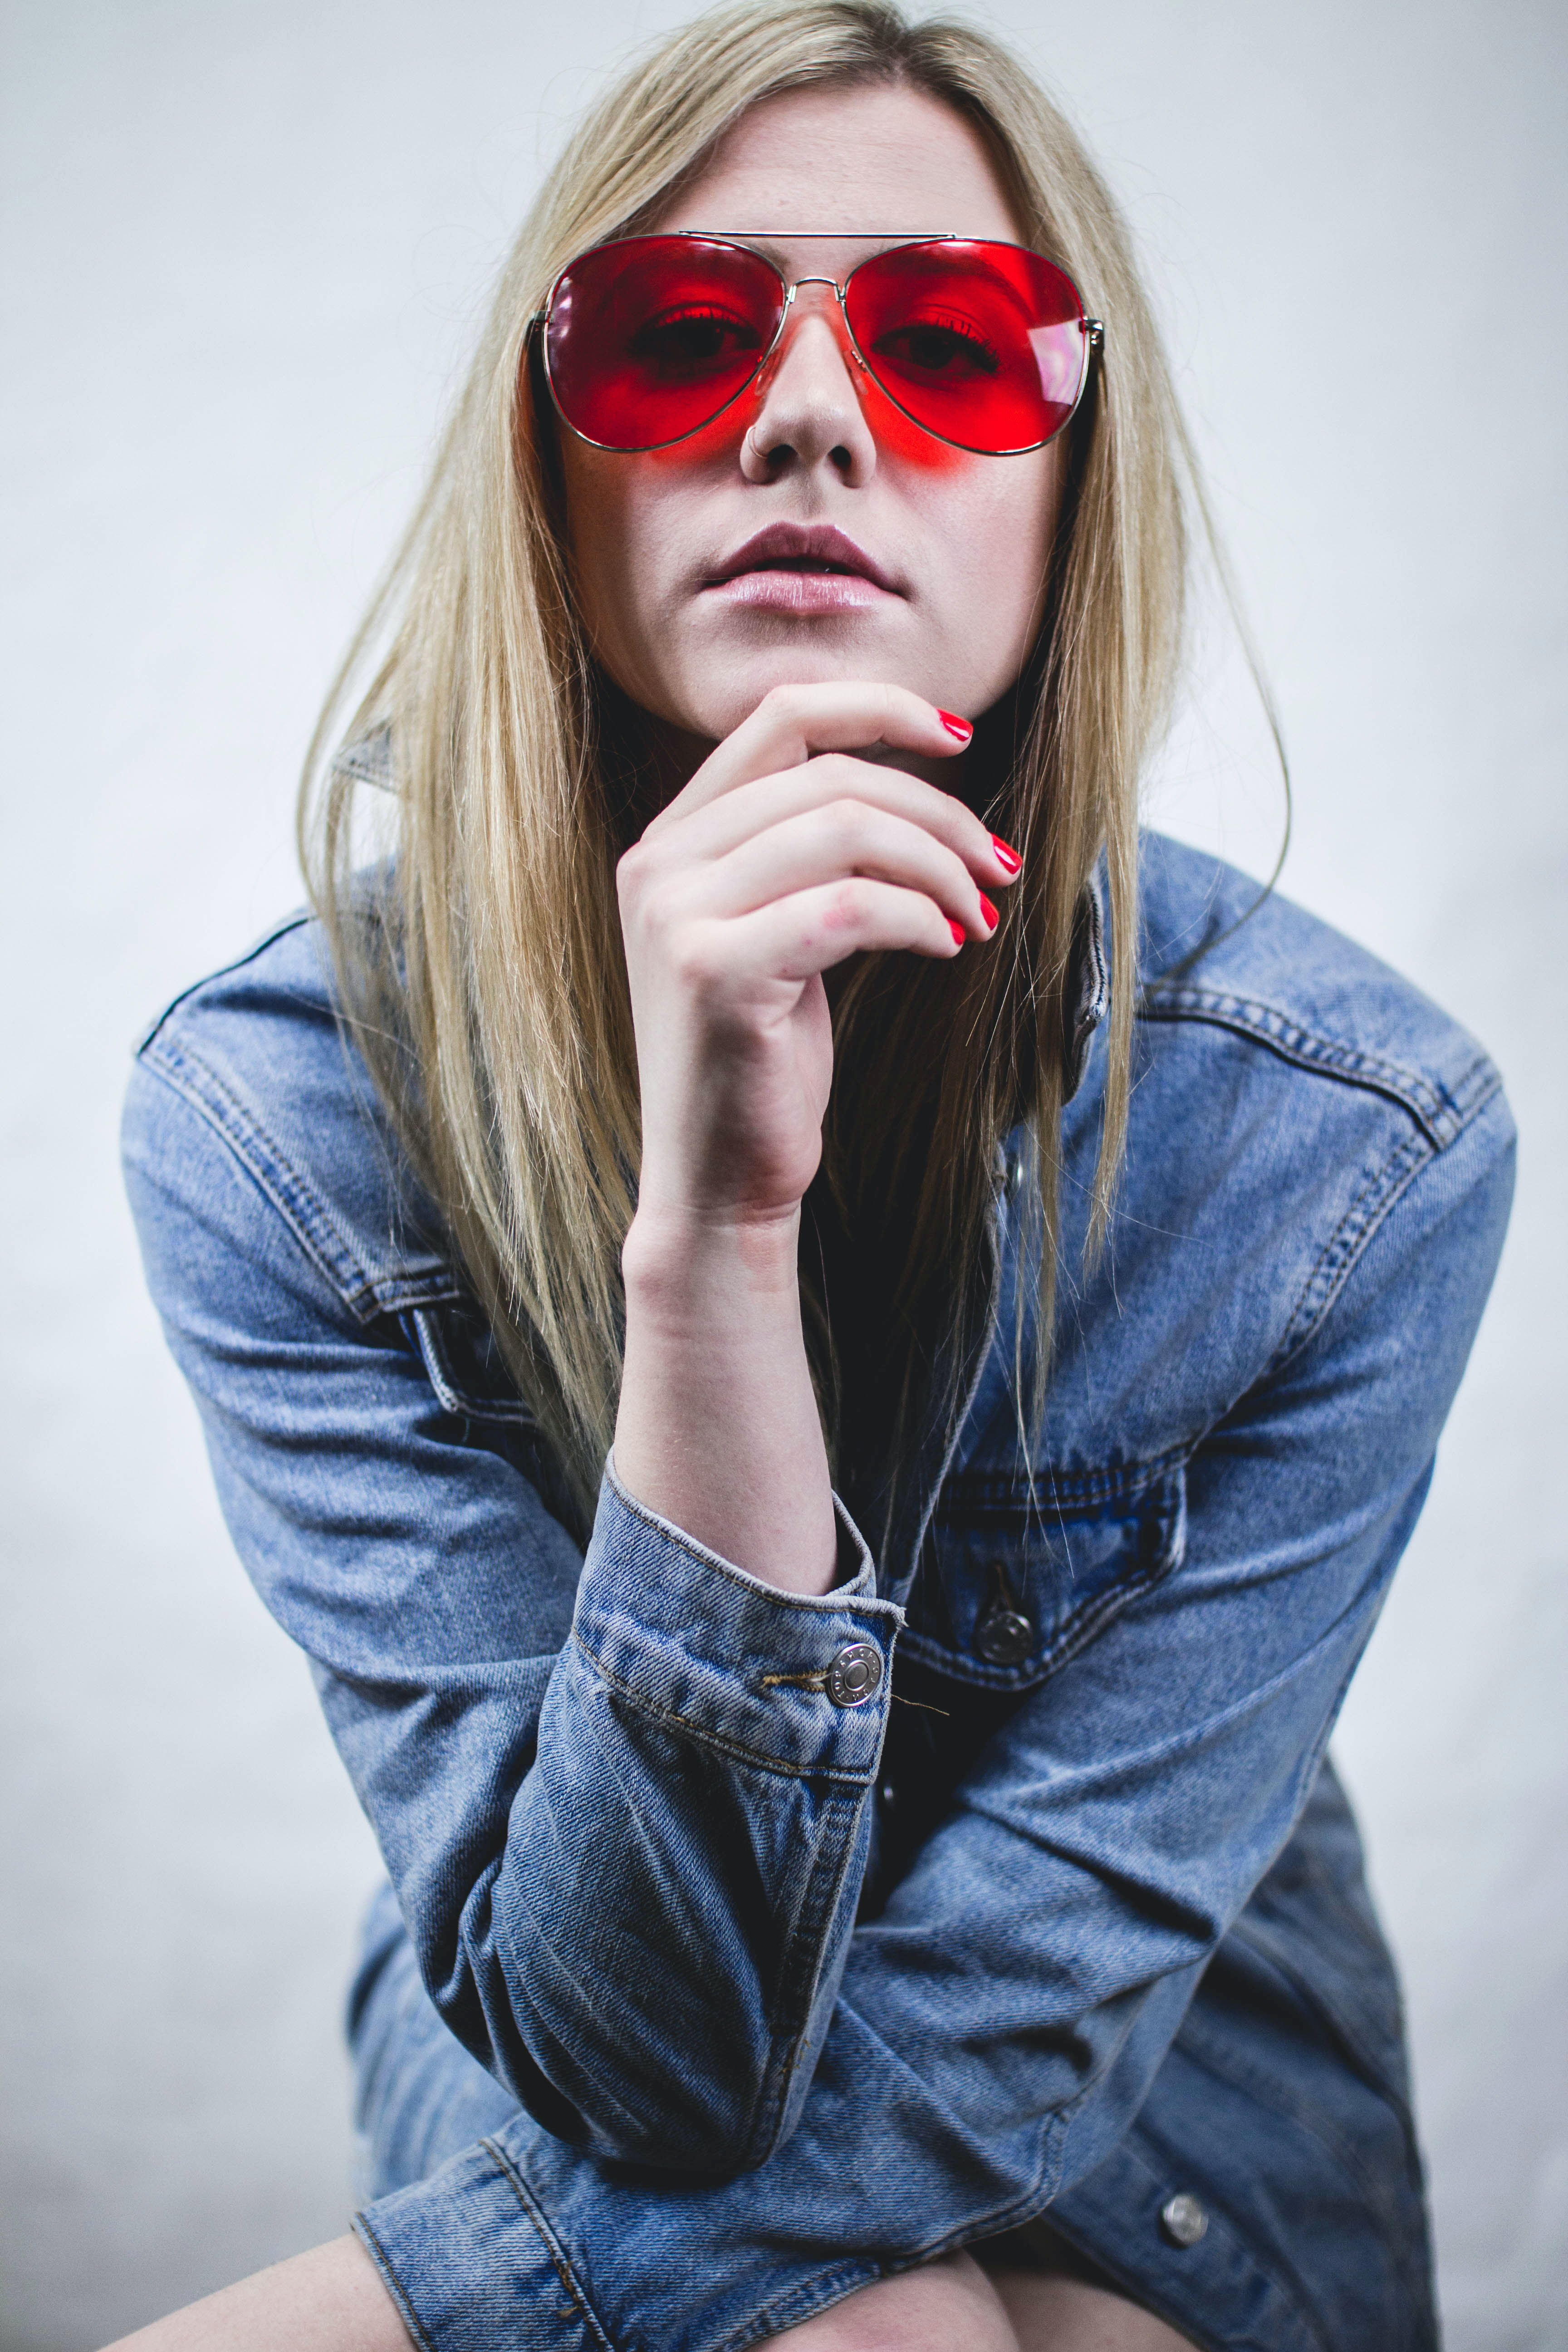 Woman poses in trendy red sunglasses and a blue denim jacket